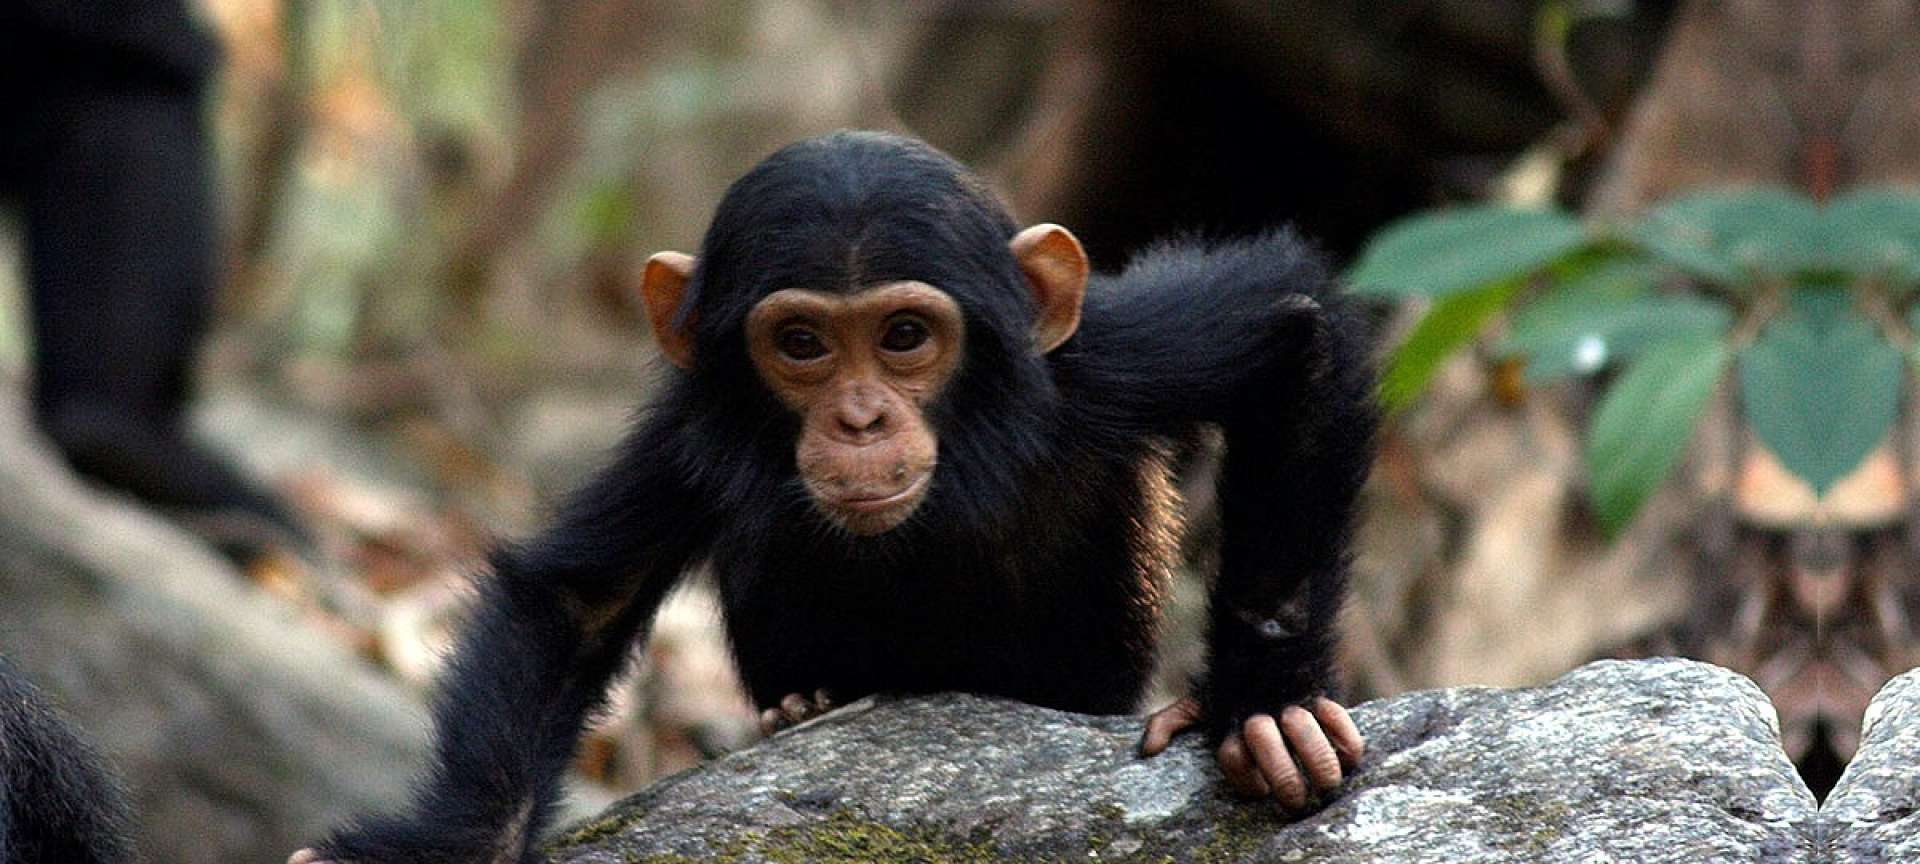 The habituated chimpanzees in the Mahale Mountains are a special sight to behold